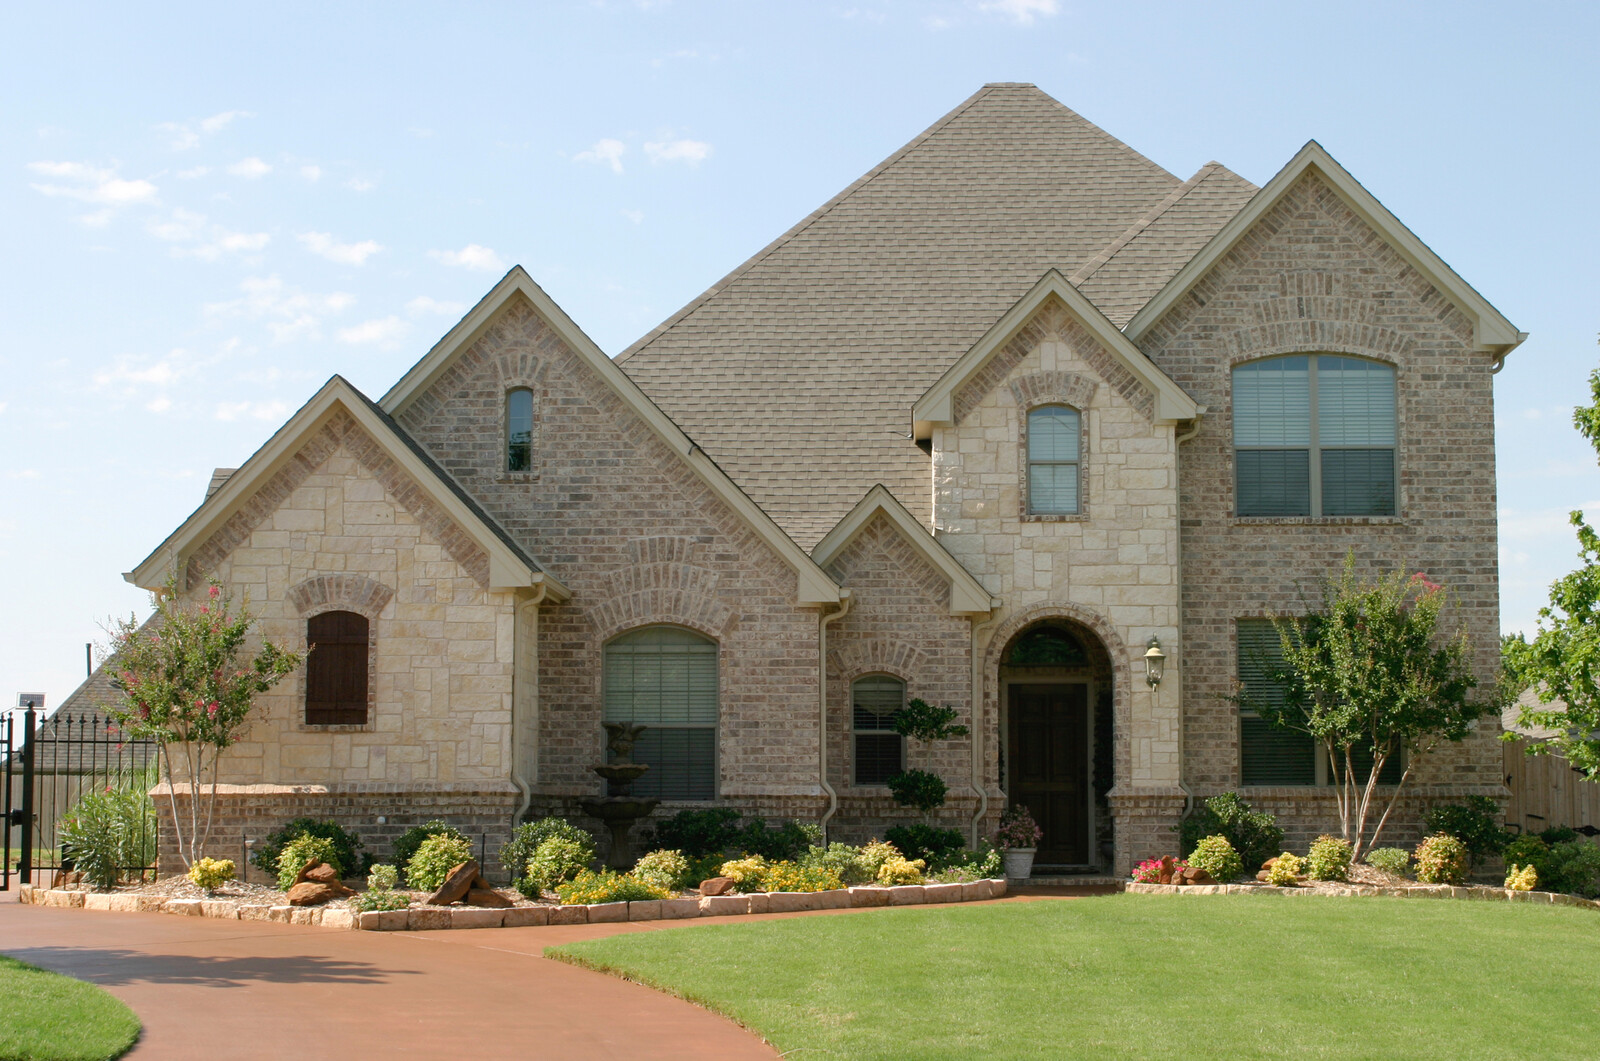 Taupe brick house with green yard and shrubbery around the base of the house and black iron fence